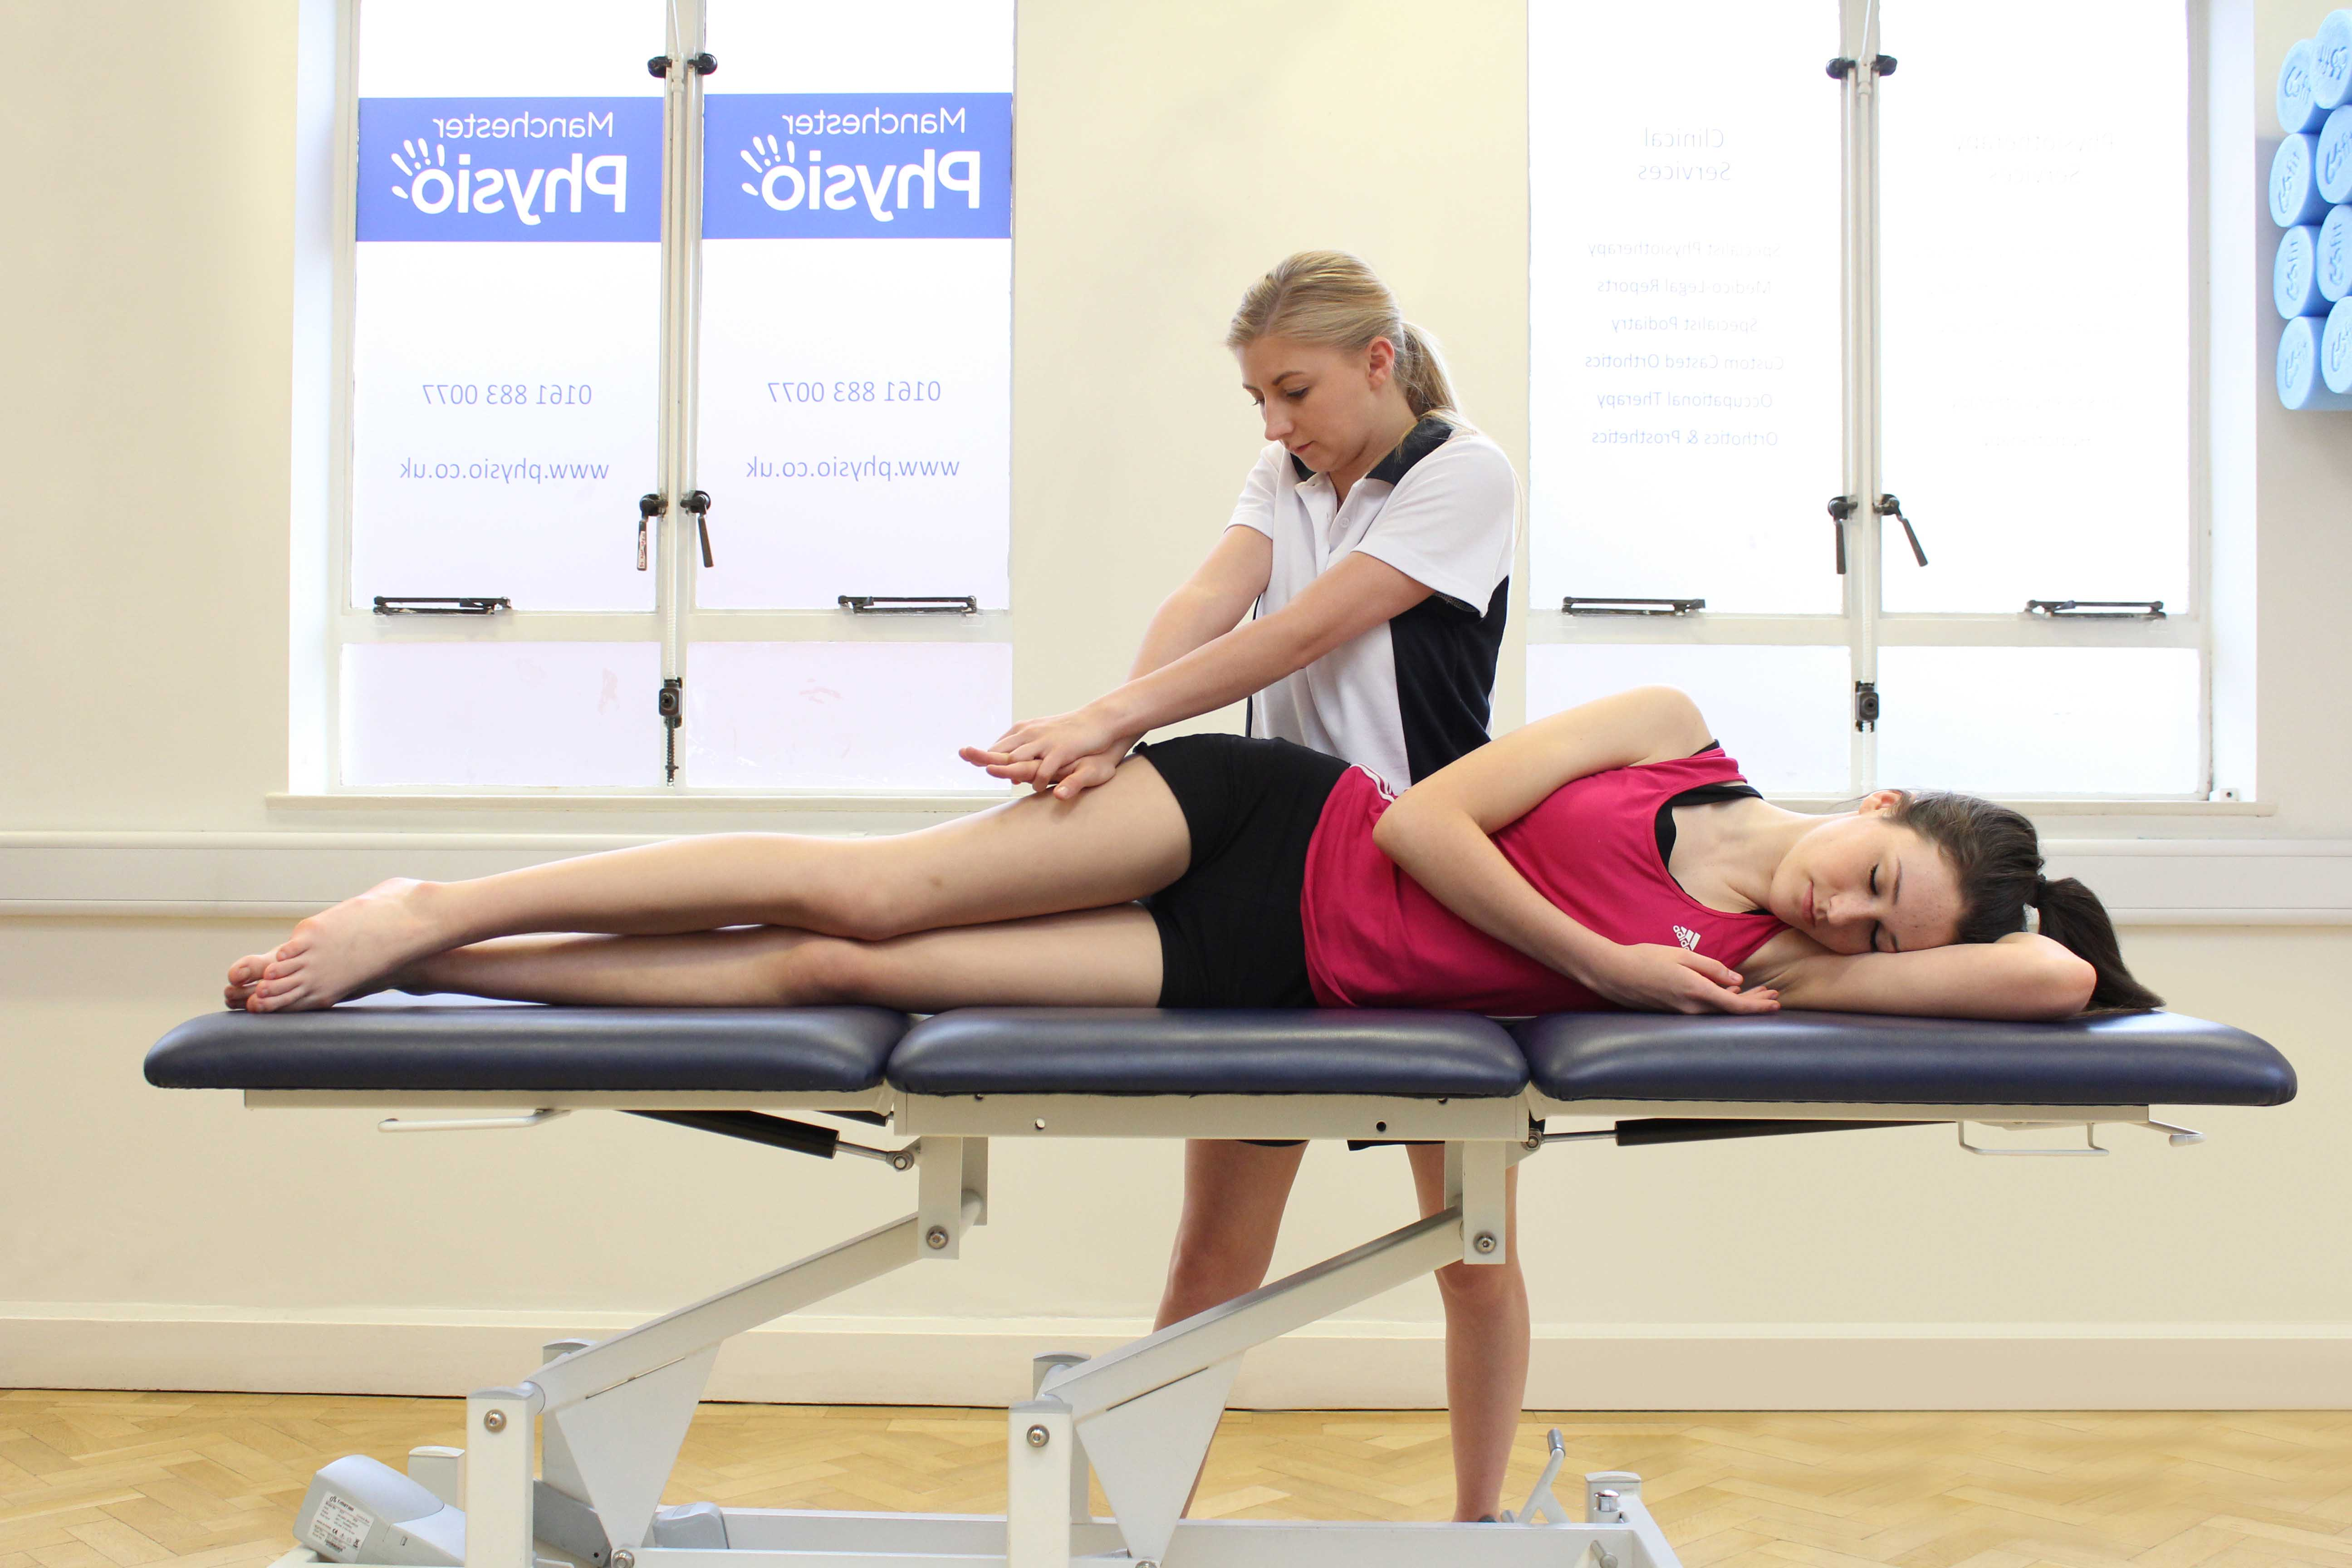 Soft tissue massage of the iliotibial band by an experienced MSK therapist